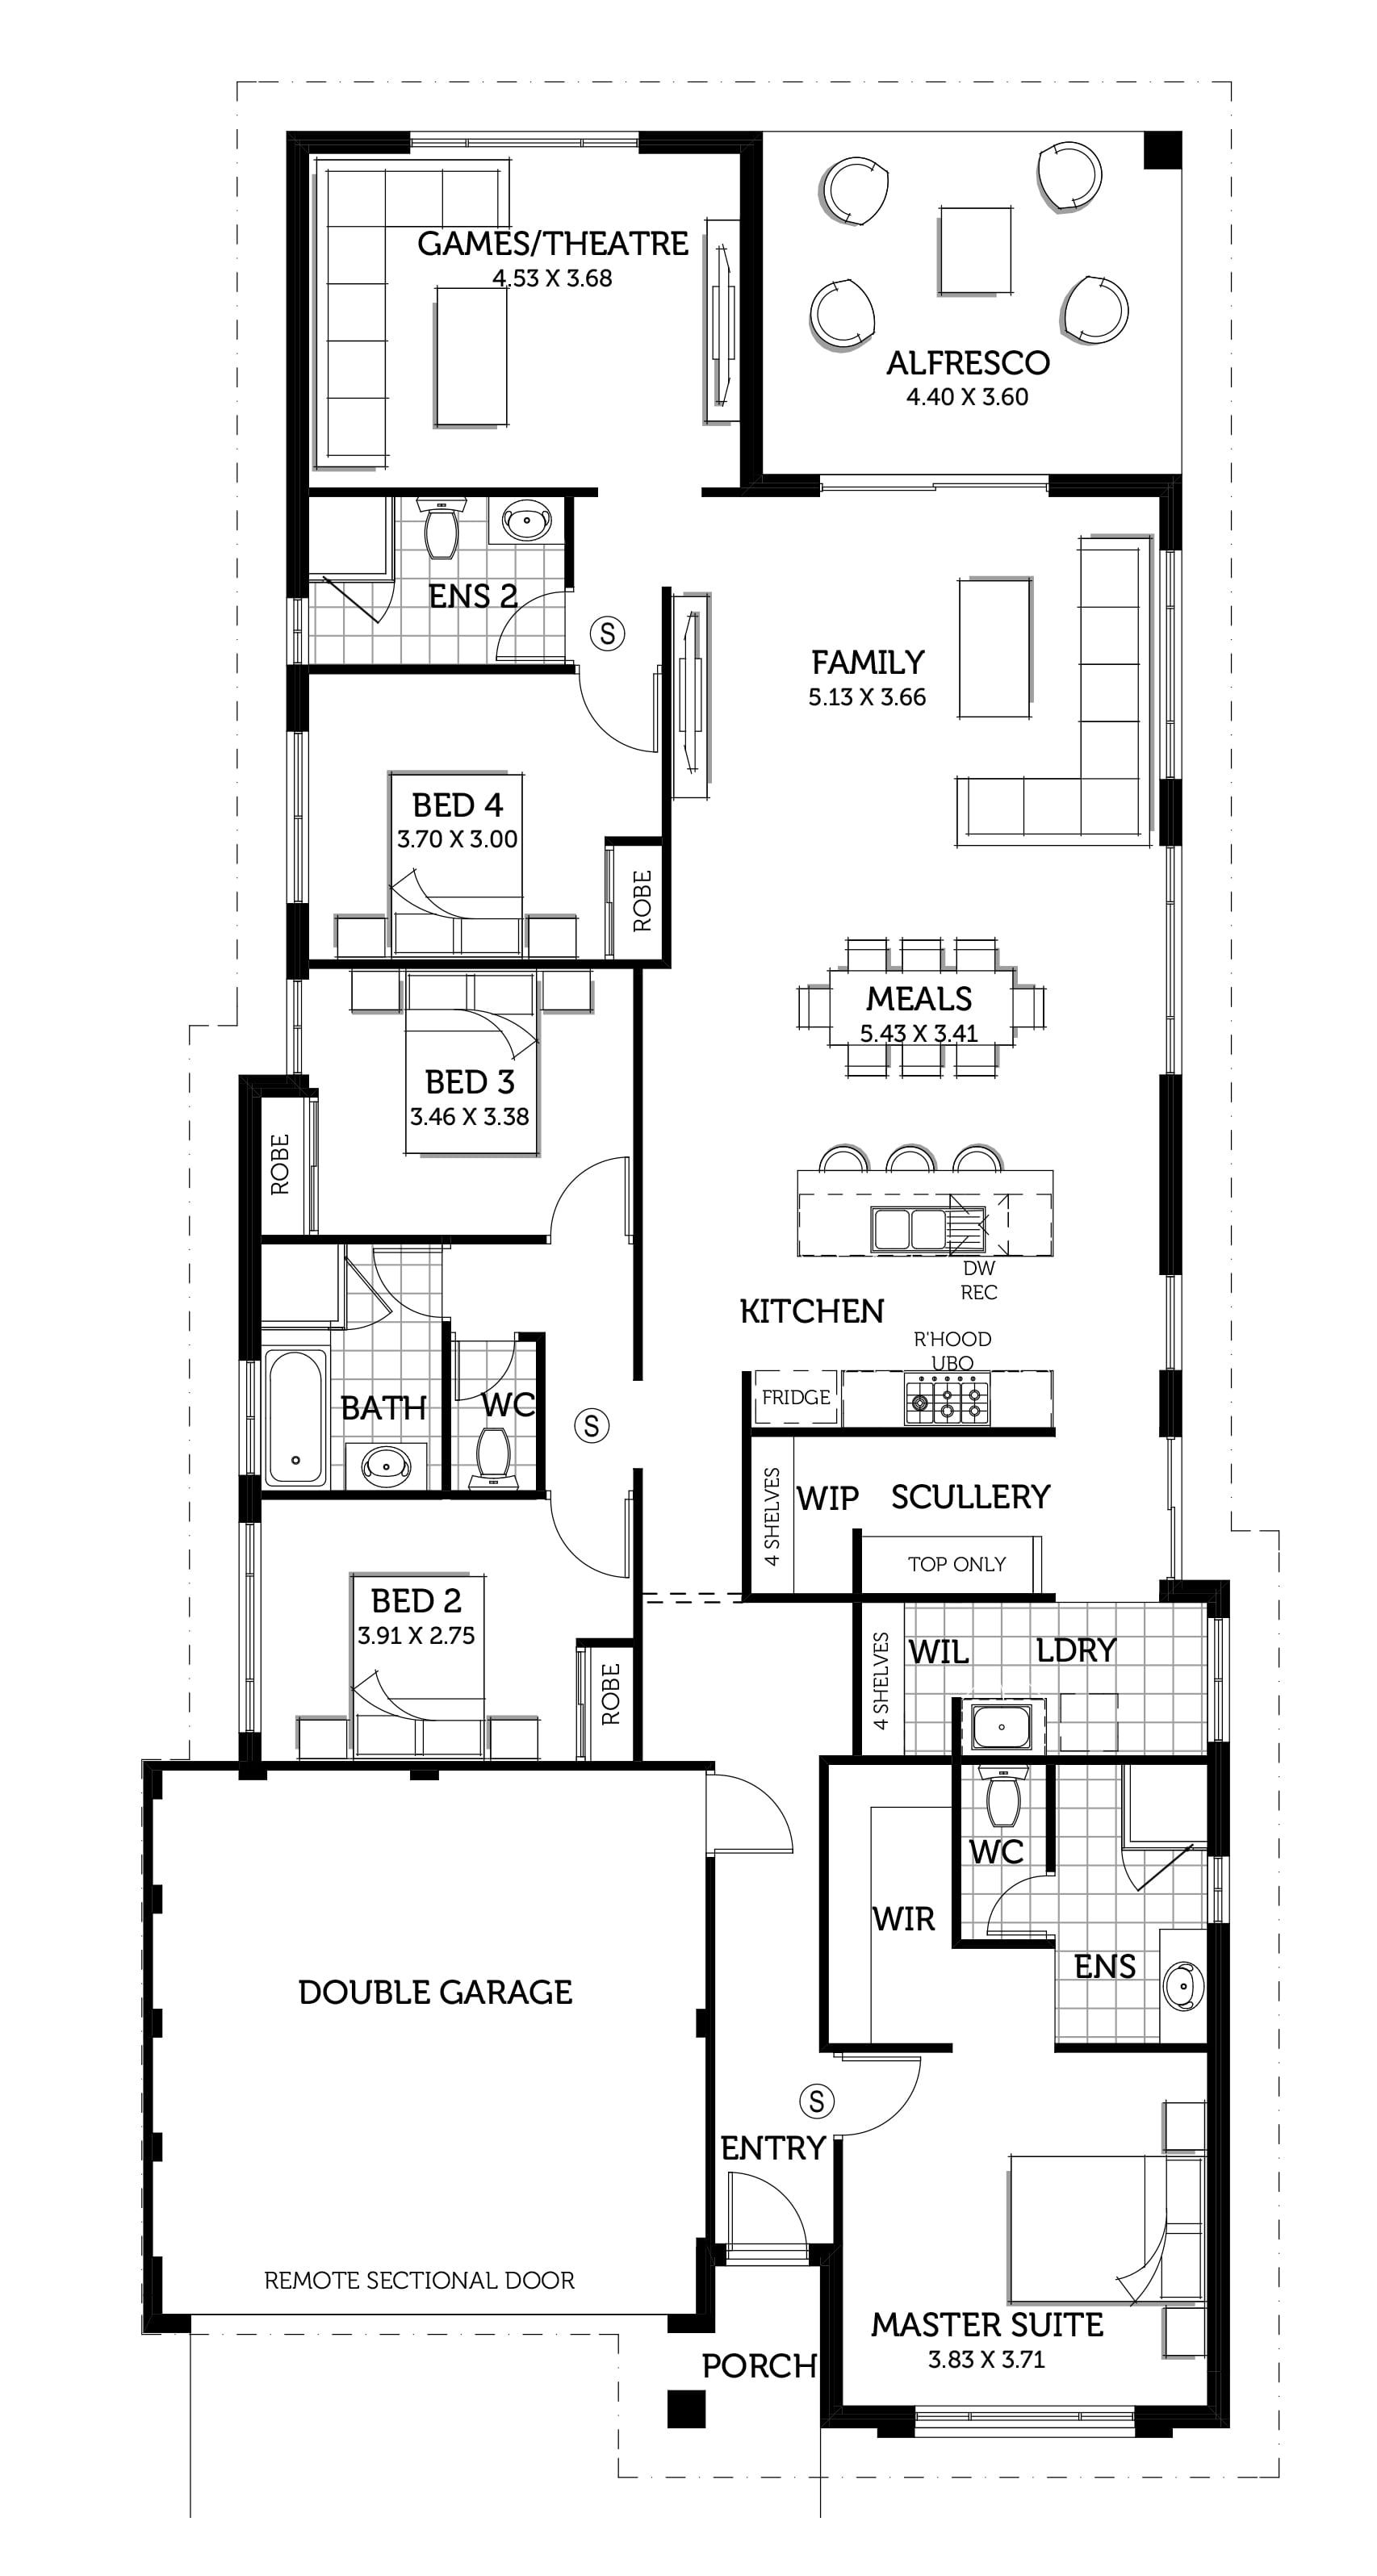 The Legacy Home Design Smart Homes For Living Smart Home Design House Design House Layout Plans